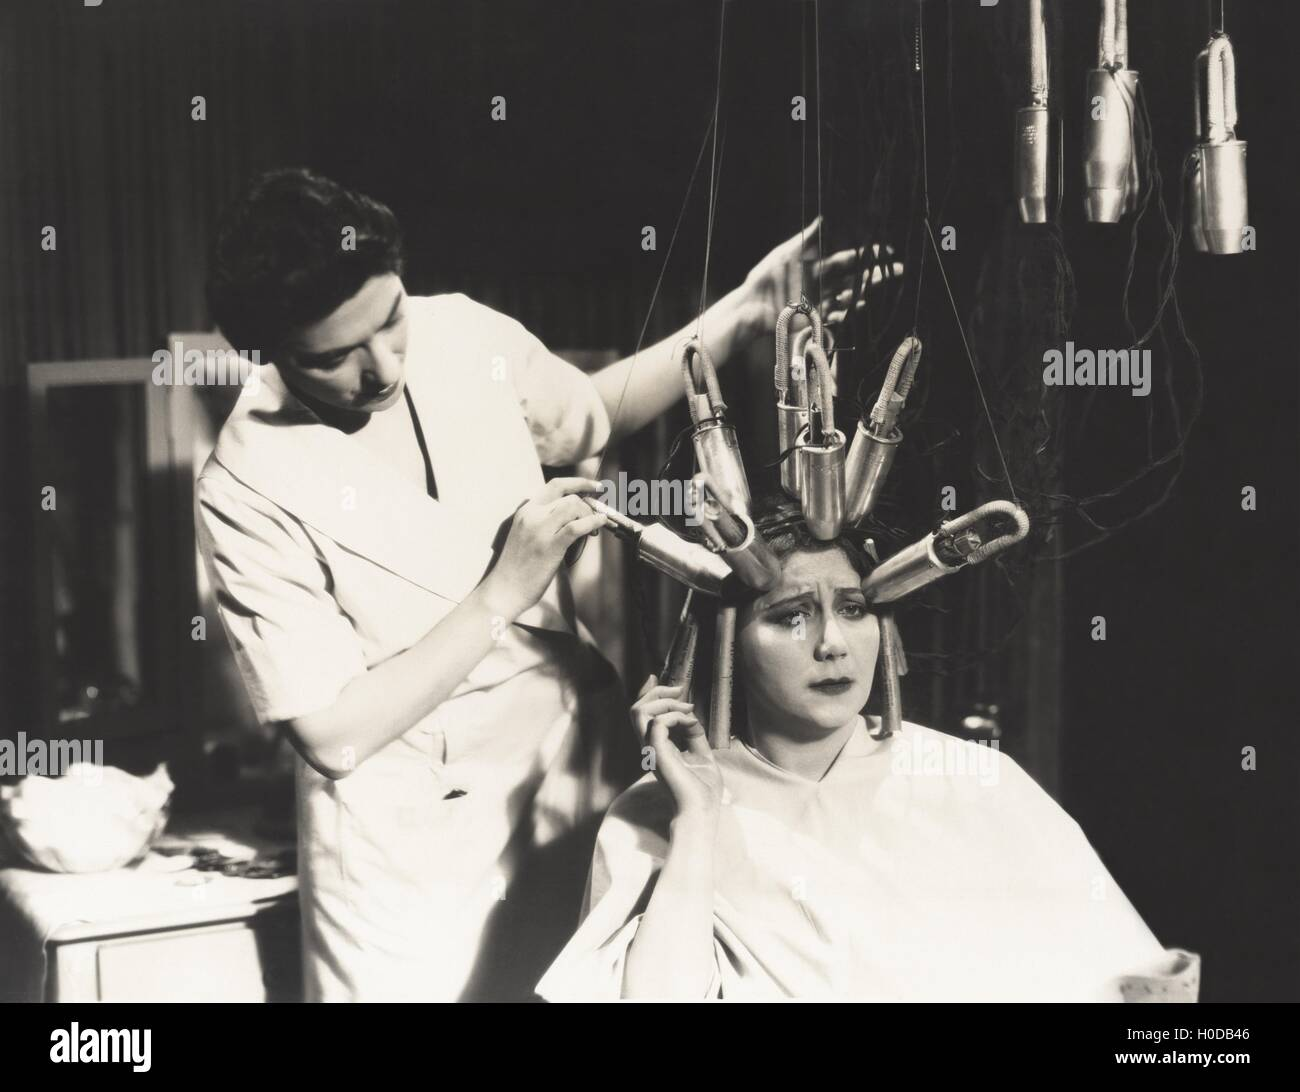 Permanent Waves - Stock Image